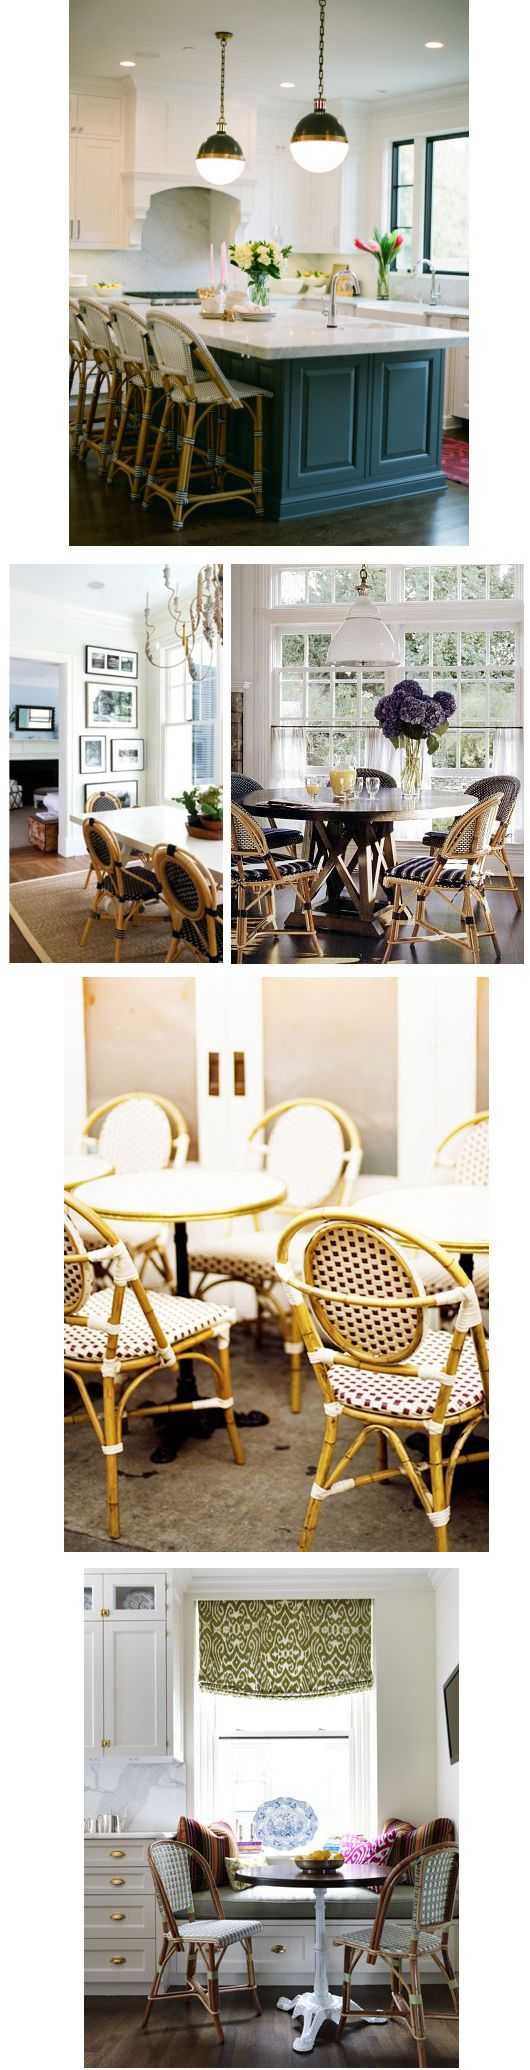 French Bistro Chairs via www.ariannabelle.com/blog